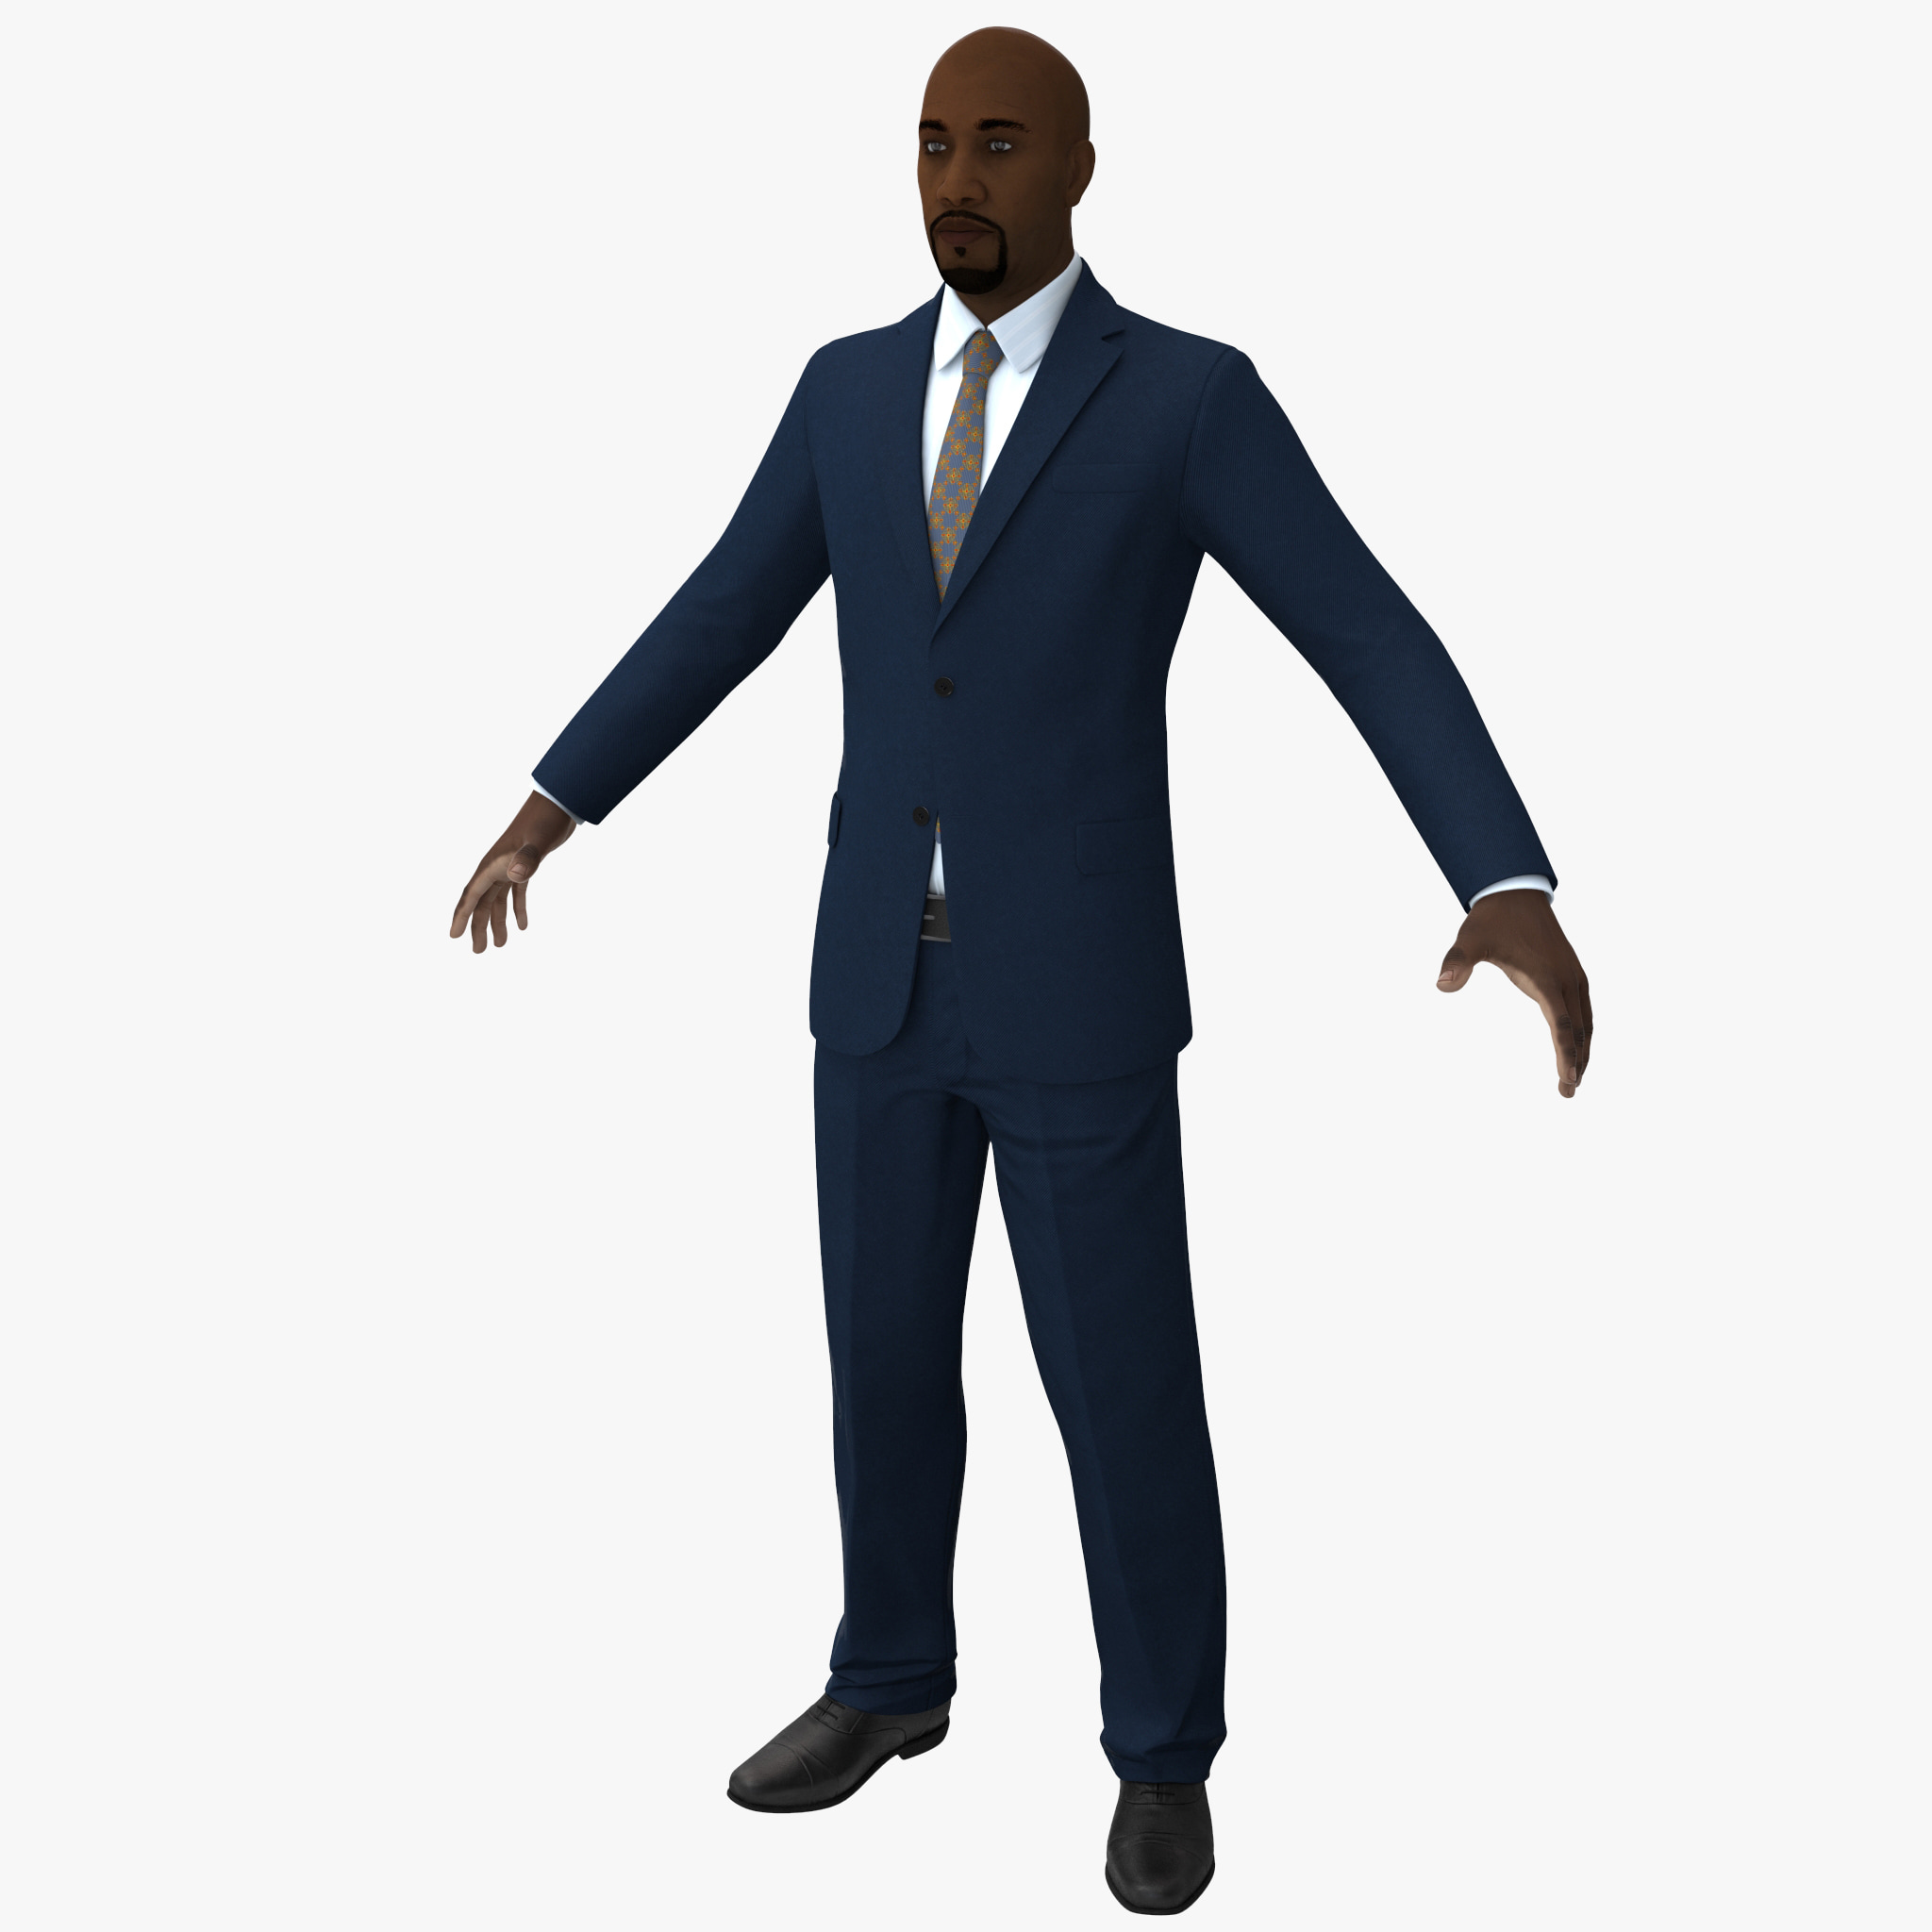 Black Male Businessman Rigged_1.jpg